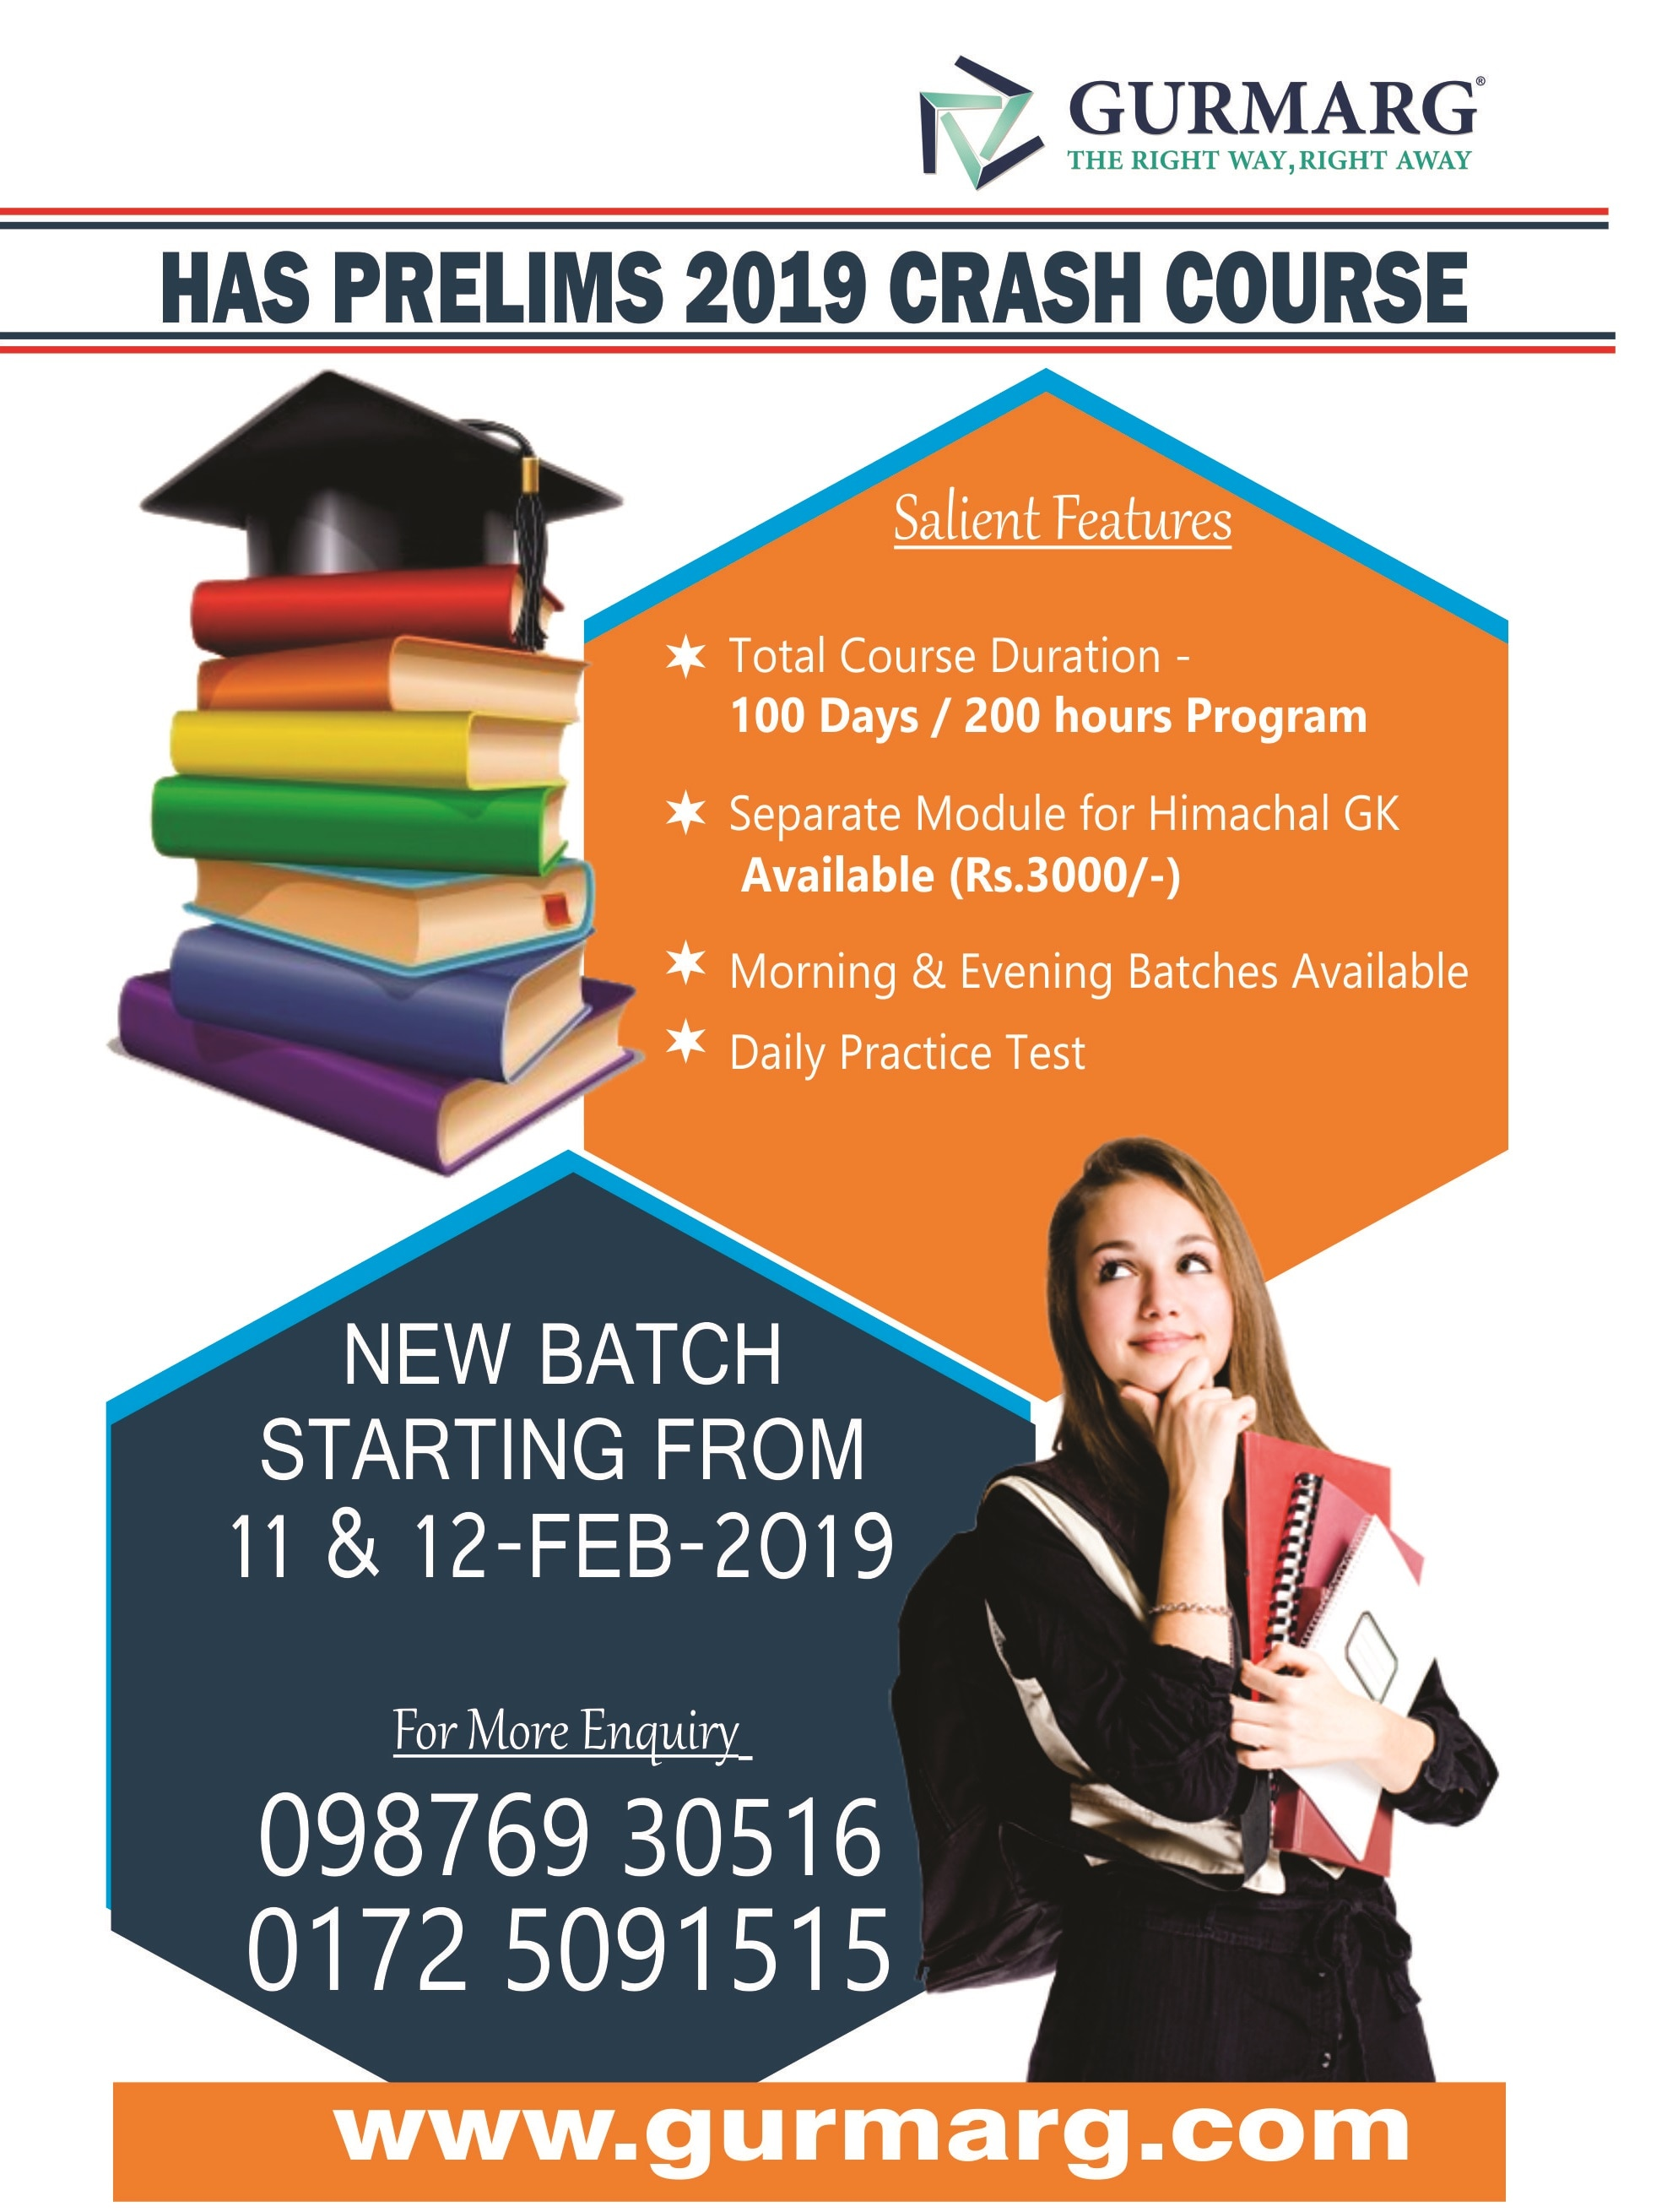 100 days Crash course for HAS 2019 starting from 11-Feb-19 with special focus on Himachal component with 300 Himachal GK practise questions and 200 current affair questions. For more details, call us at 9876930516,9872810007